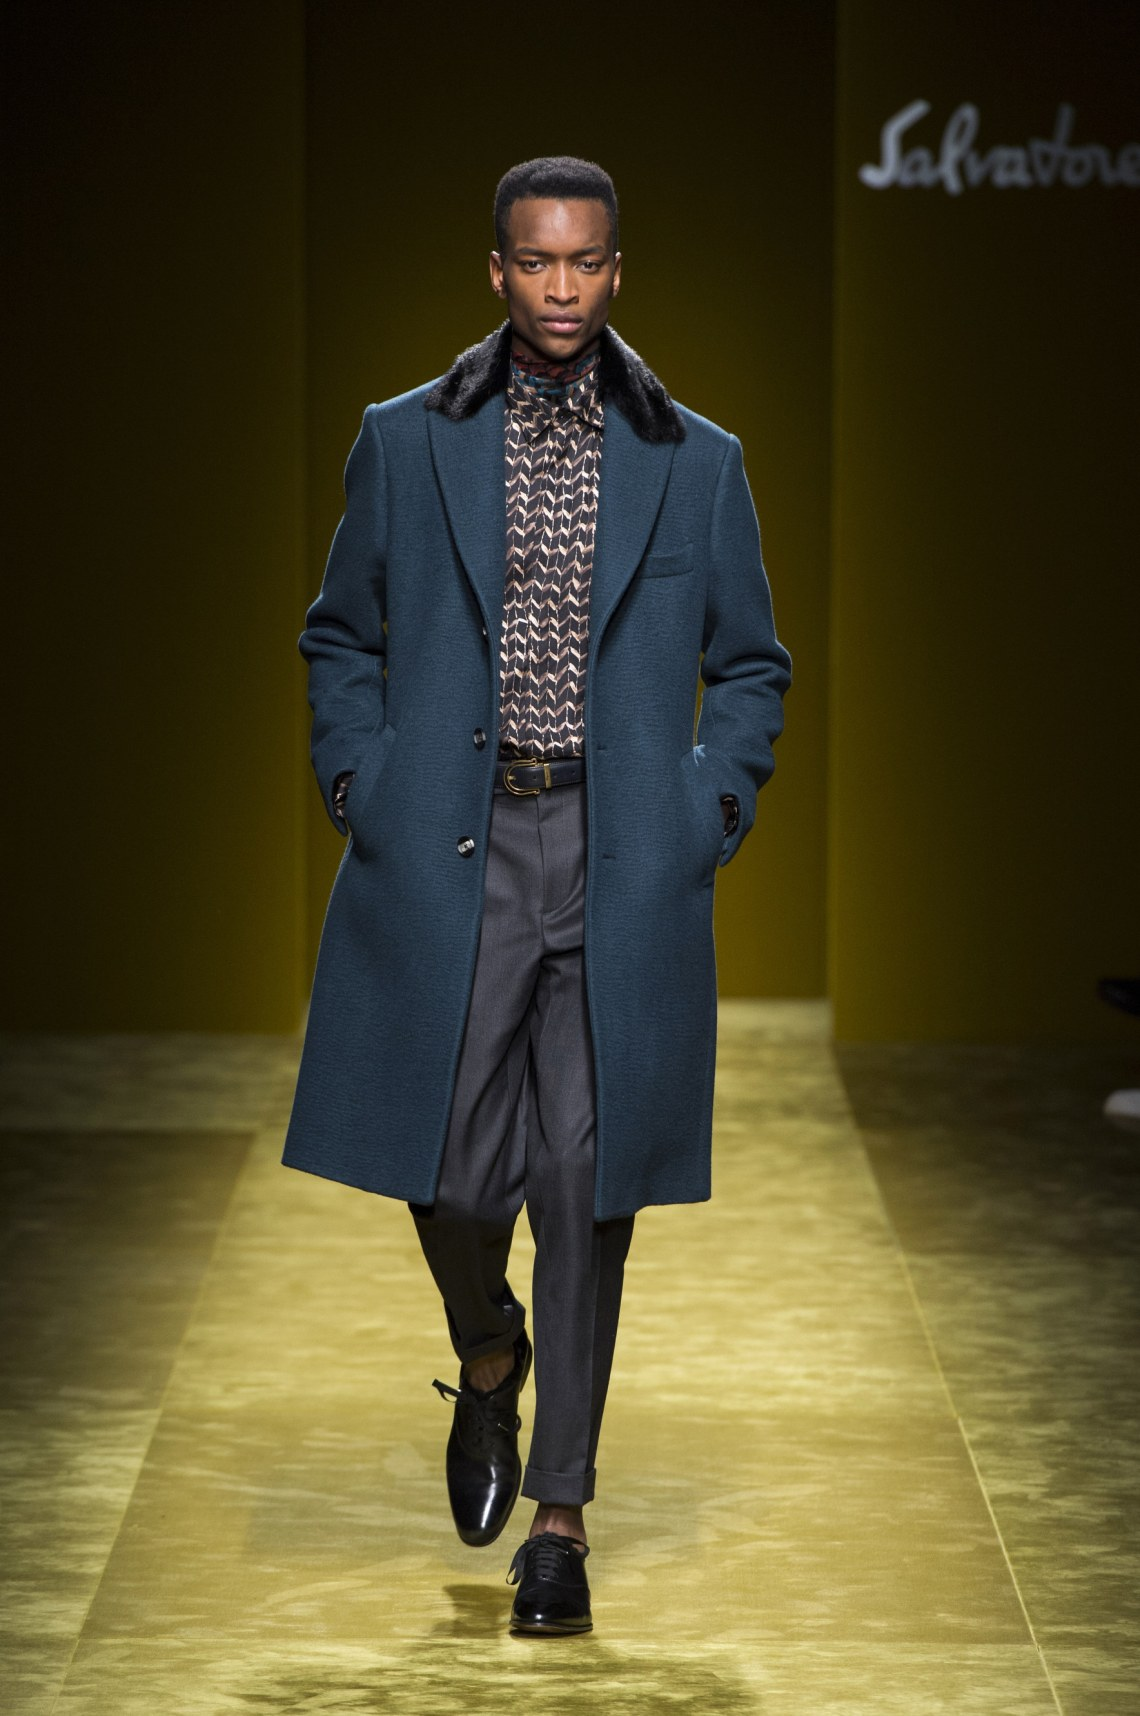 SALVATORE FERRAGAMO - Fall Winter 2016/17